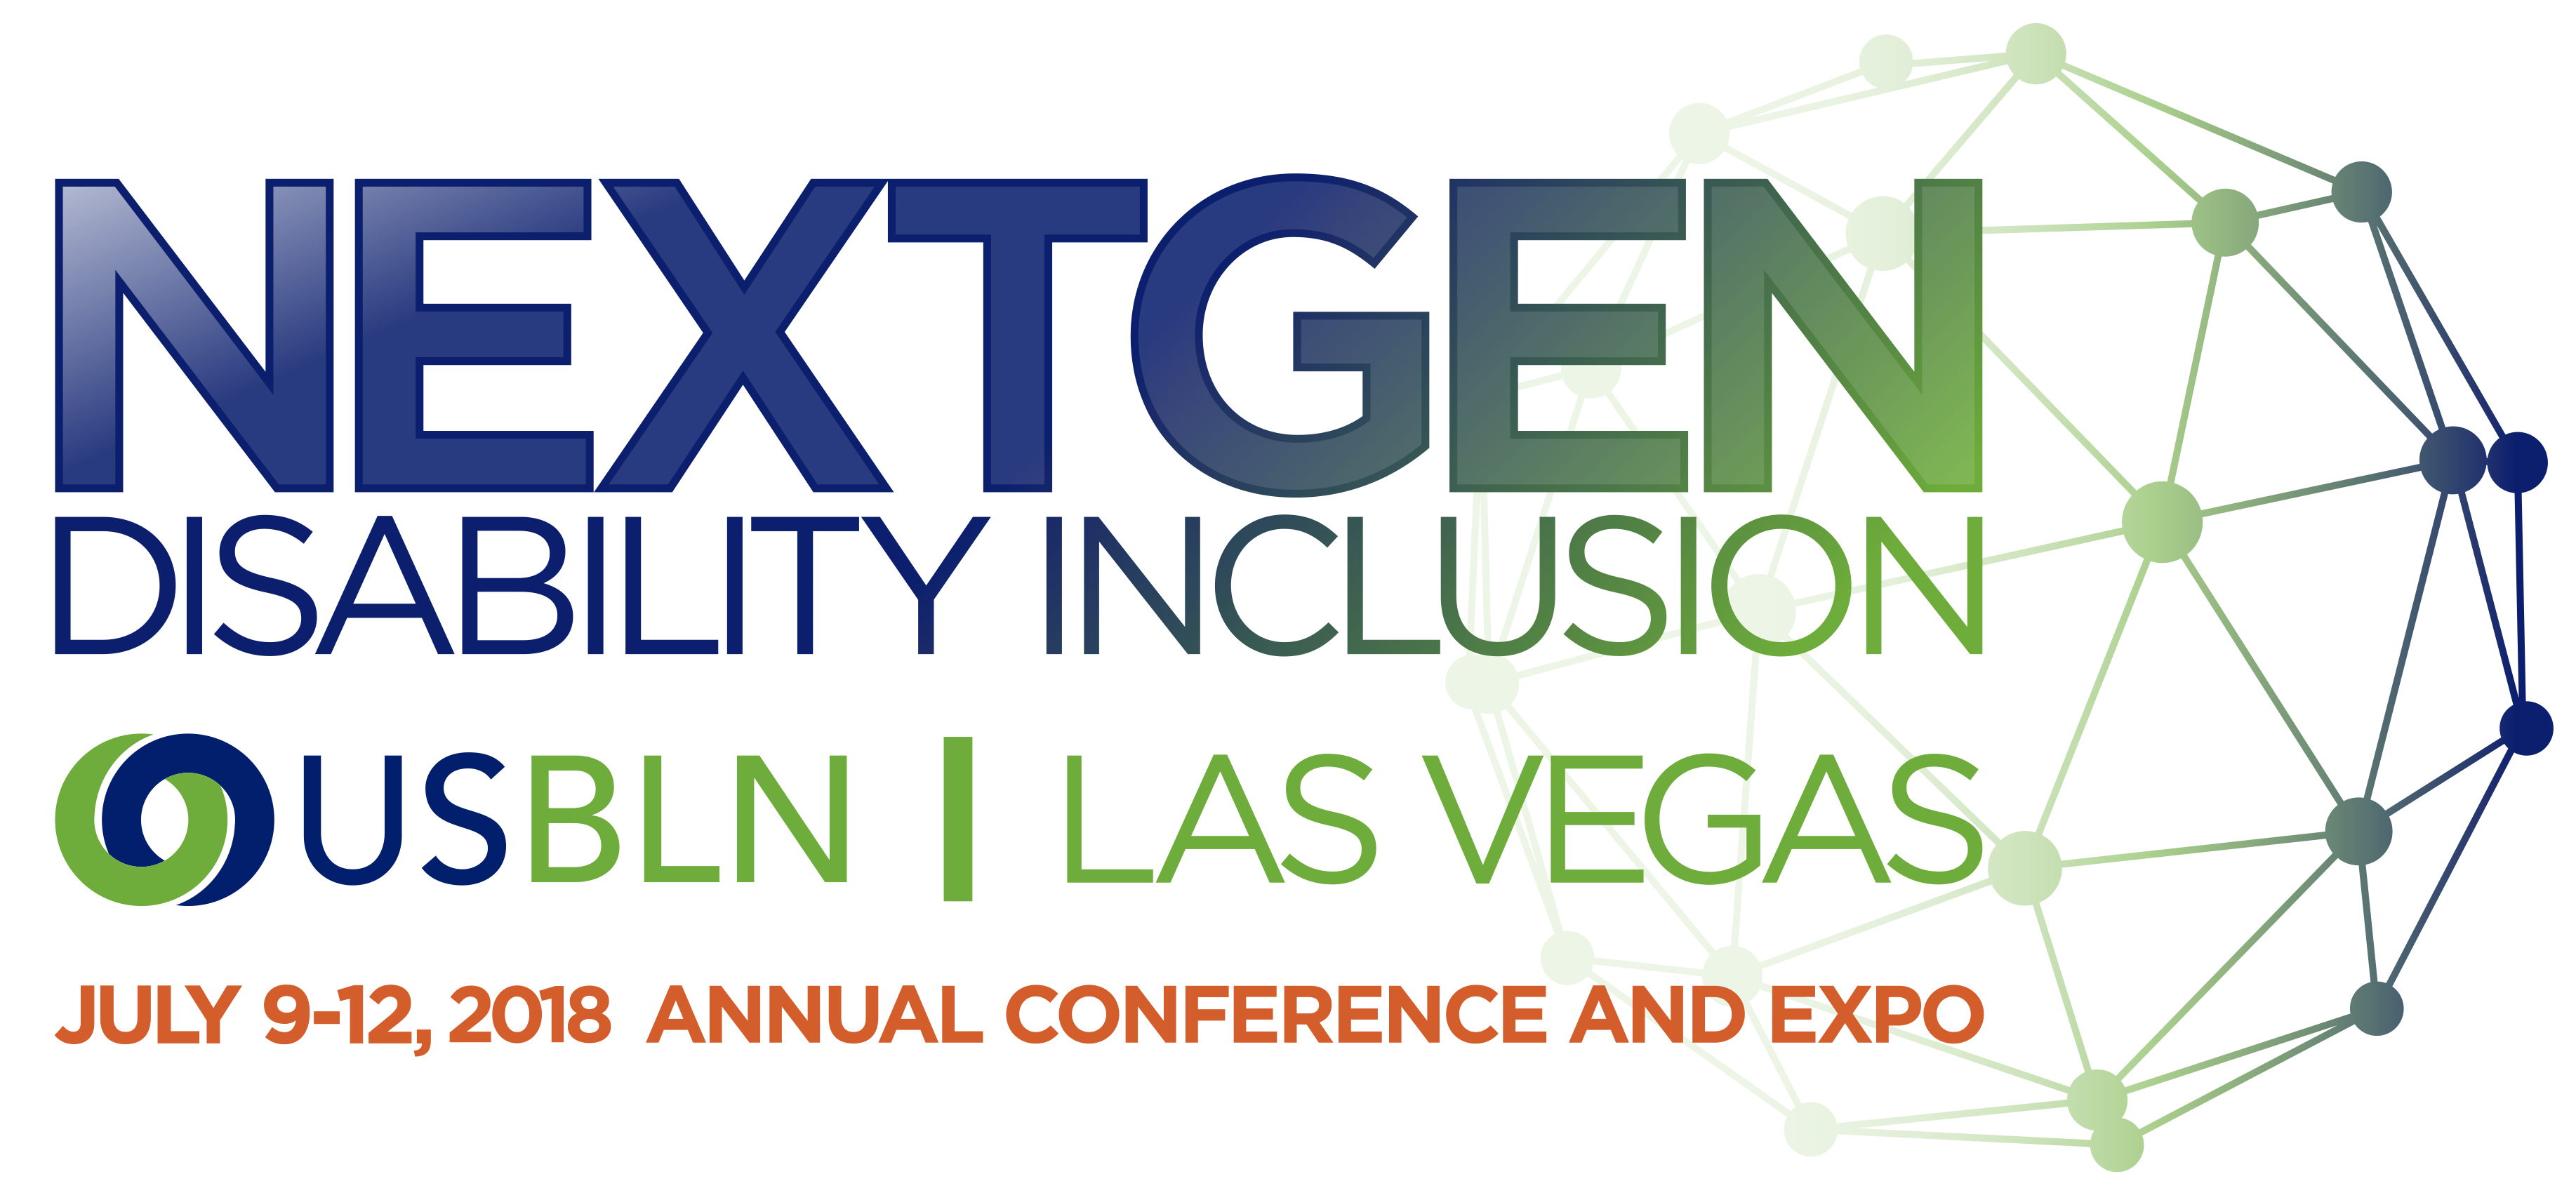 Agenda: USBLN 21st Annual Conference & Expo \